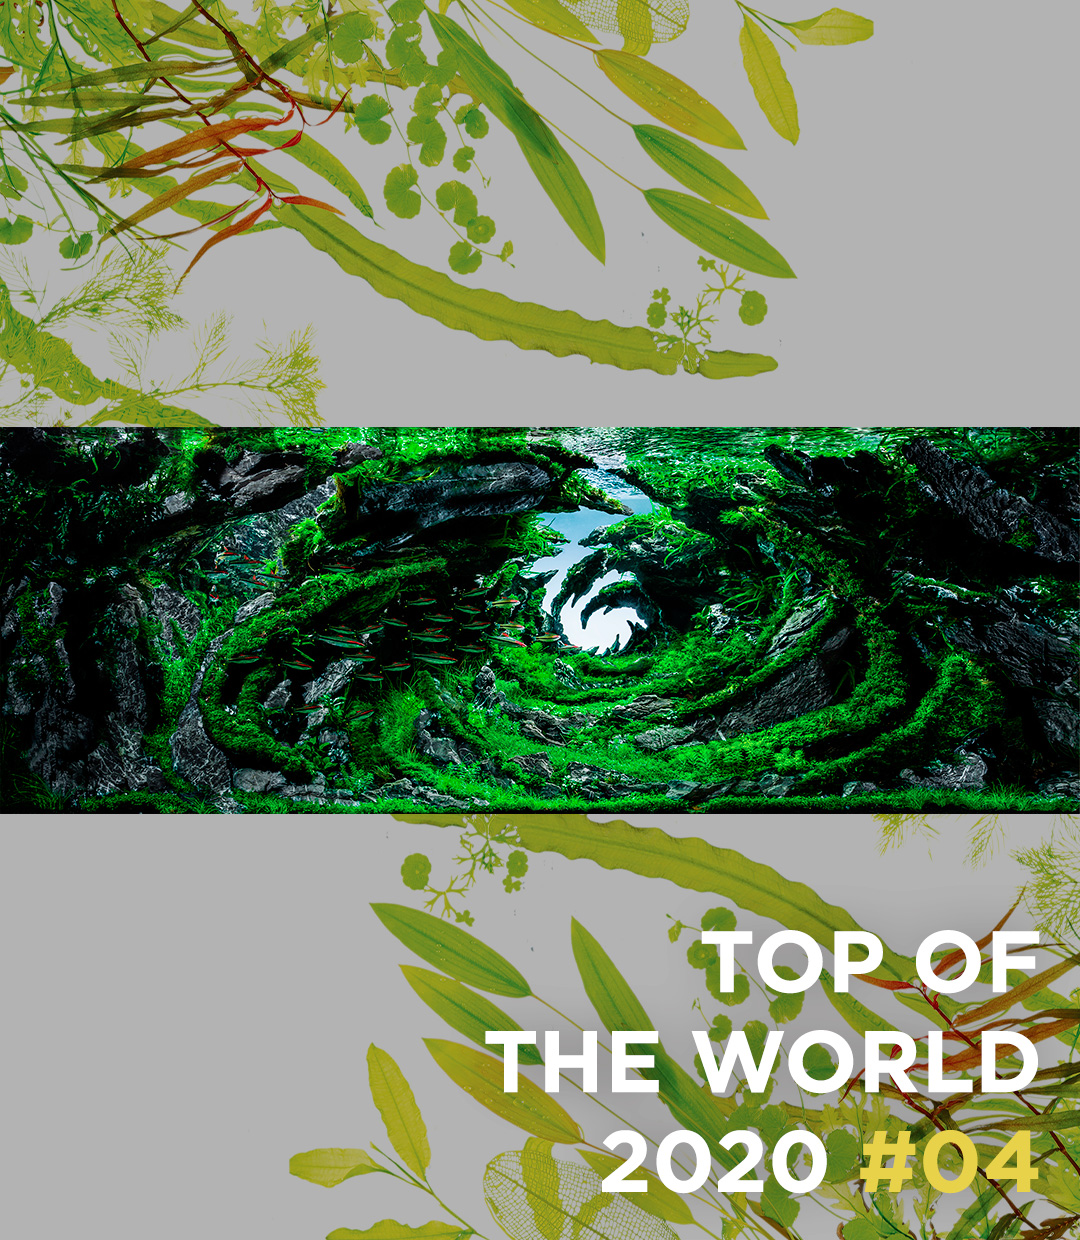 TOP OF THE WORLD 2020 #04 Albert Escrihuela Cáceres